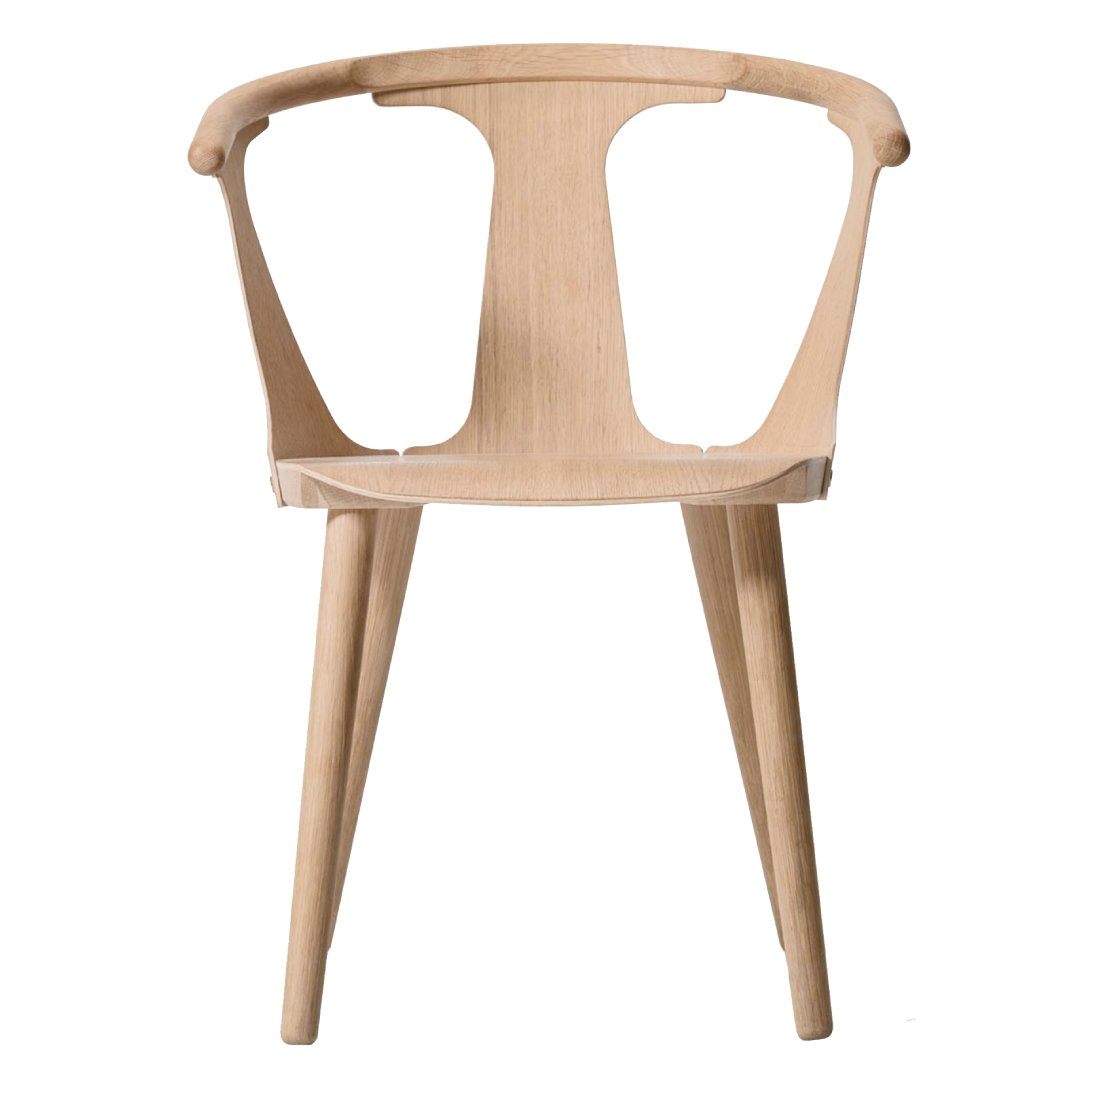 &Tradition In Between Chair SK1 Naturel Eiken